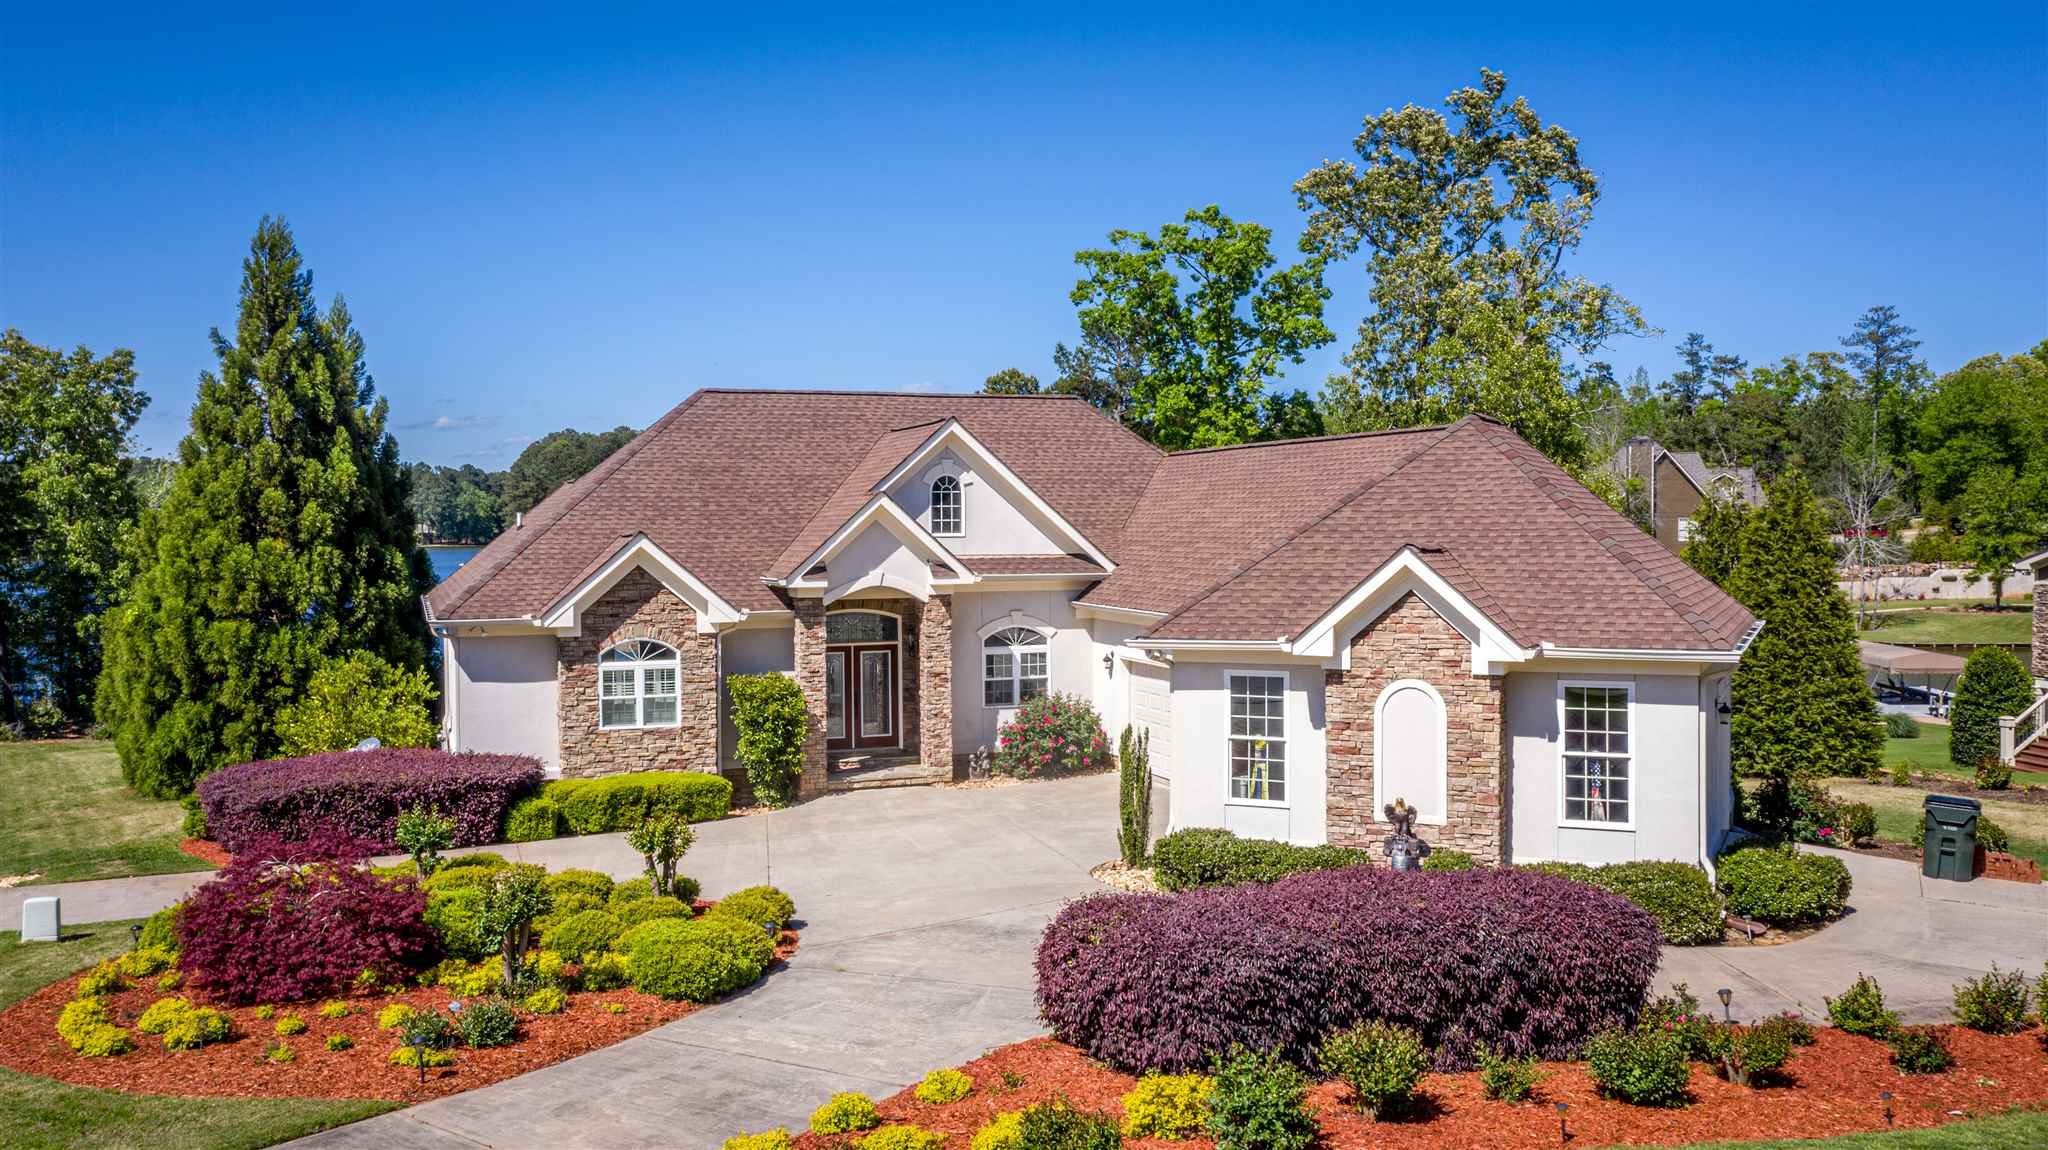 One of Lake Oconee 3 Bedroom Homes for Sale at 2081 CLEARWATER DRIVE